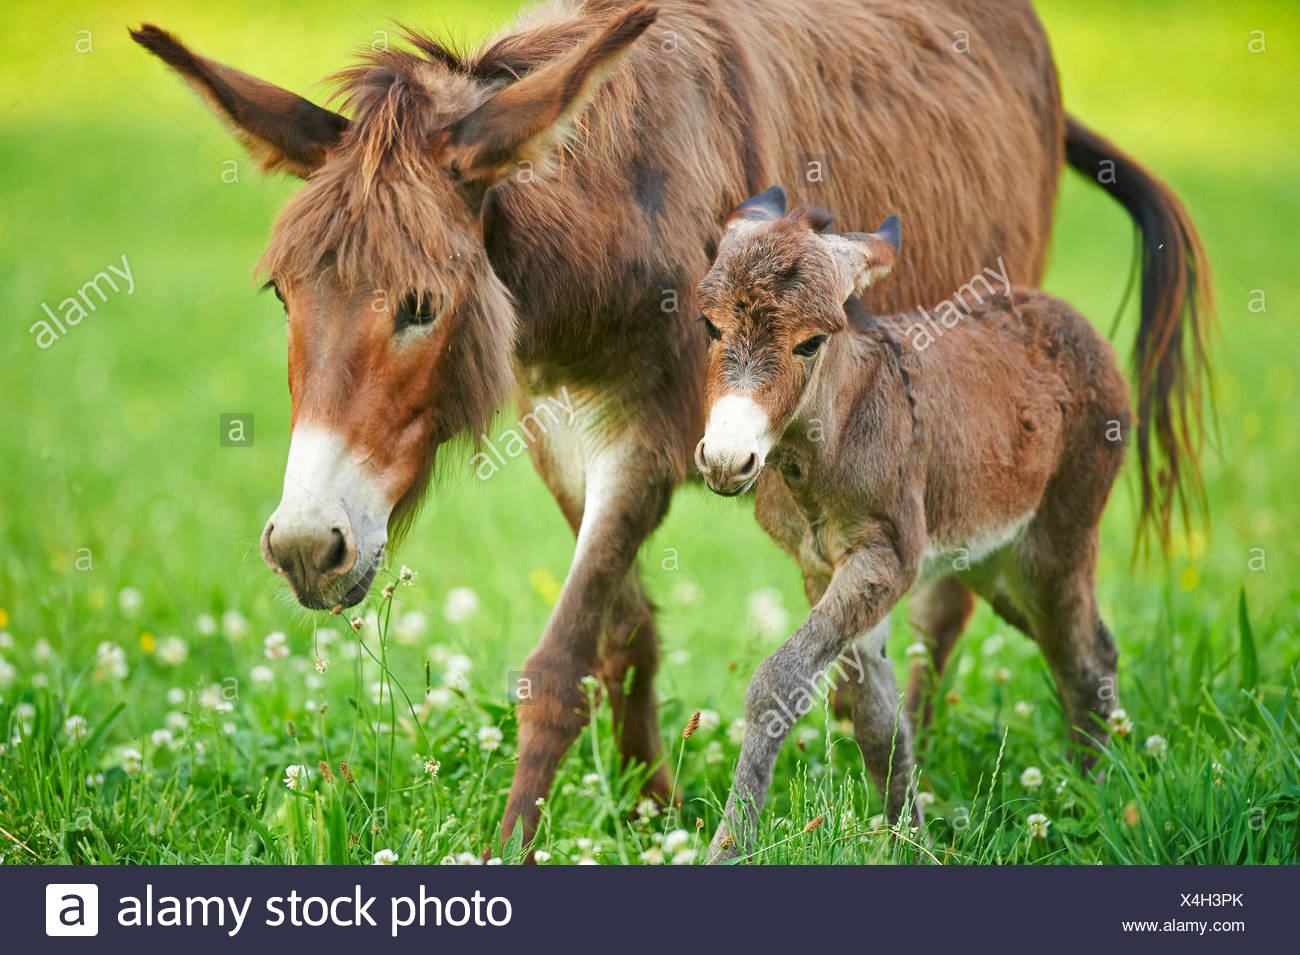 Domestic donkey (Equus asinus asinus), donkey foal with mother in a meadow, Germany - Stock Image